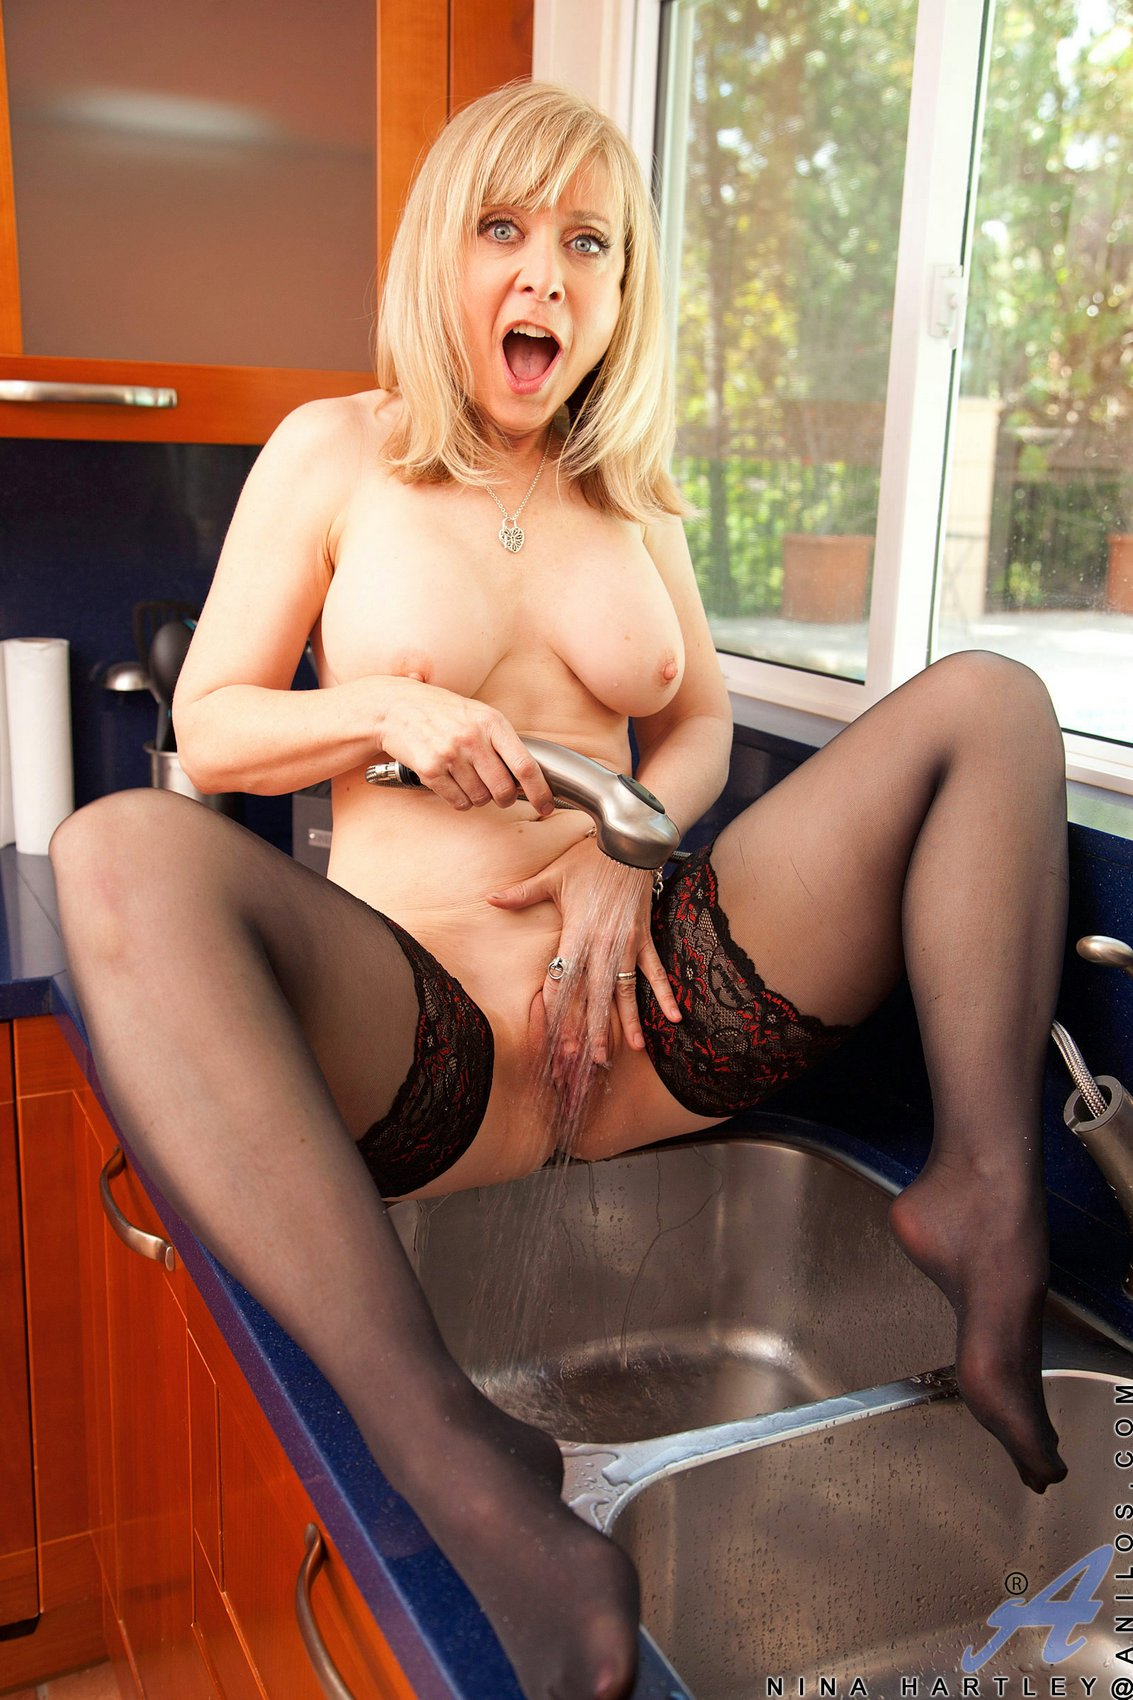 Nina Hartley In Black Stockings Masturbating In The Kitchen - My Pornstar Book-8600